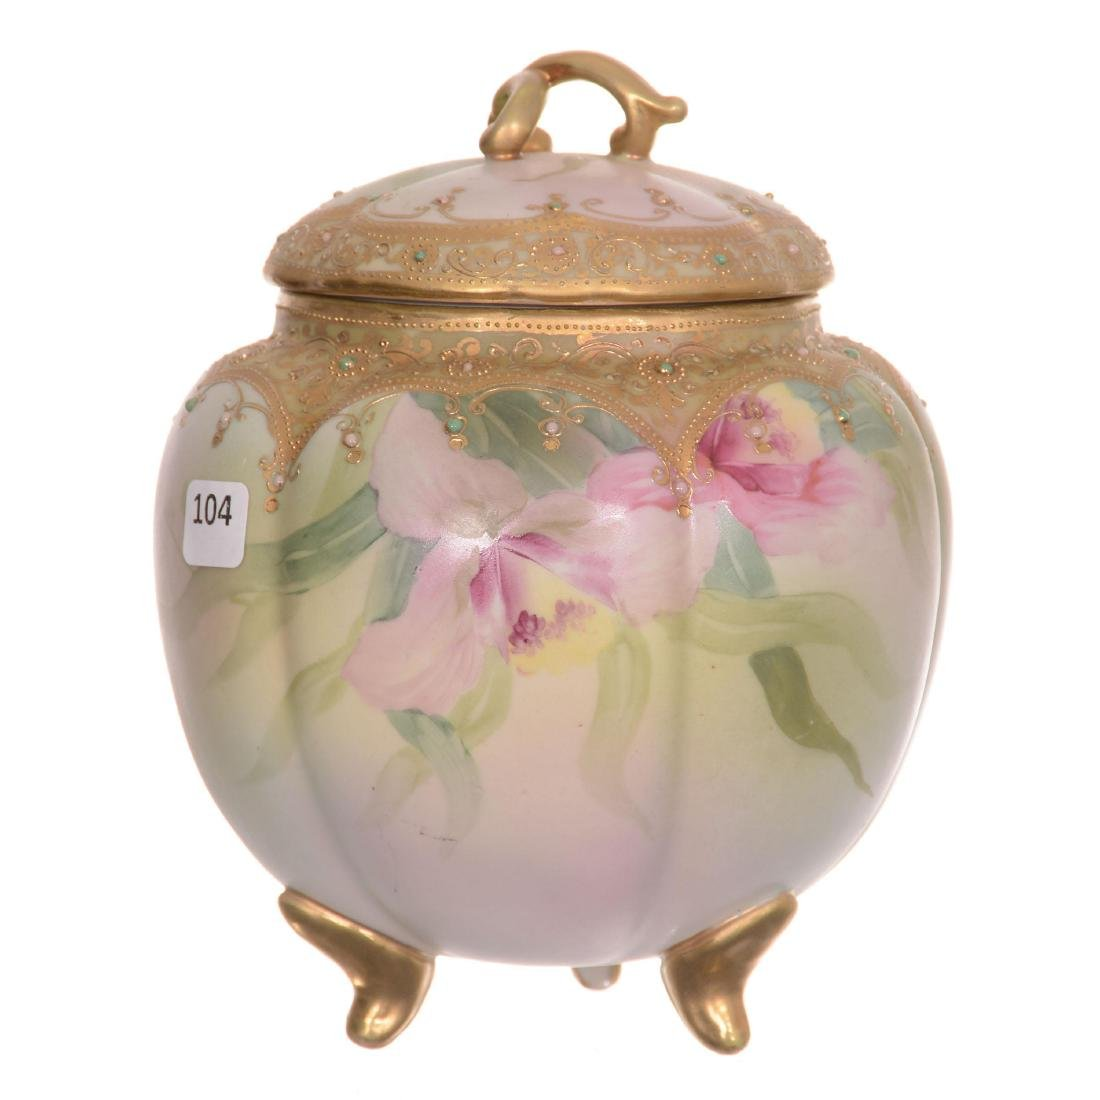 Nippon Three-Footed Biscuit Jar